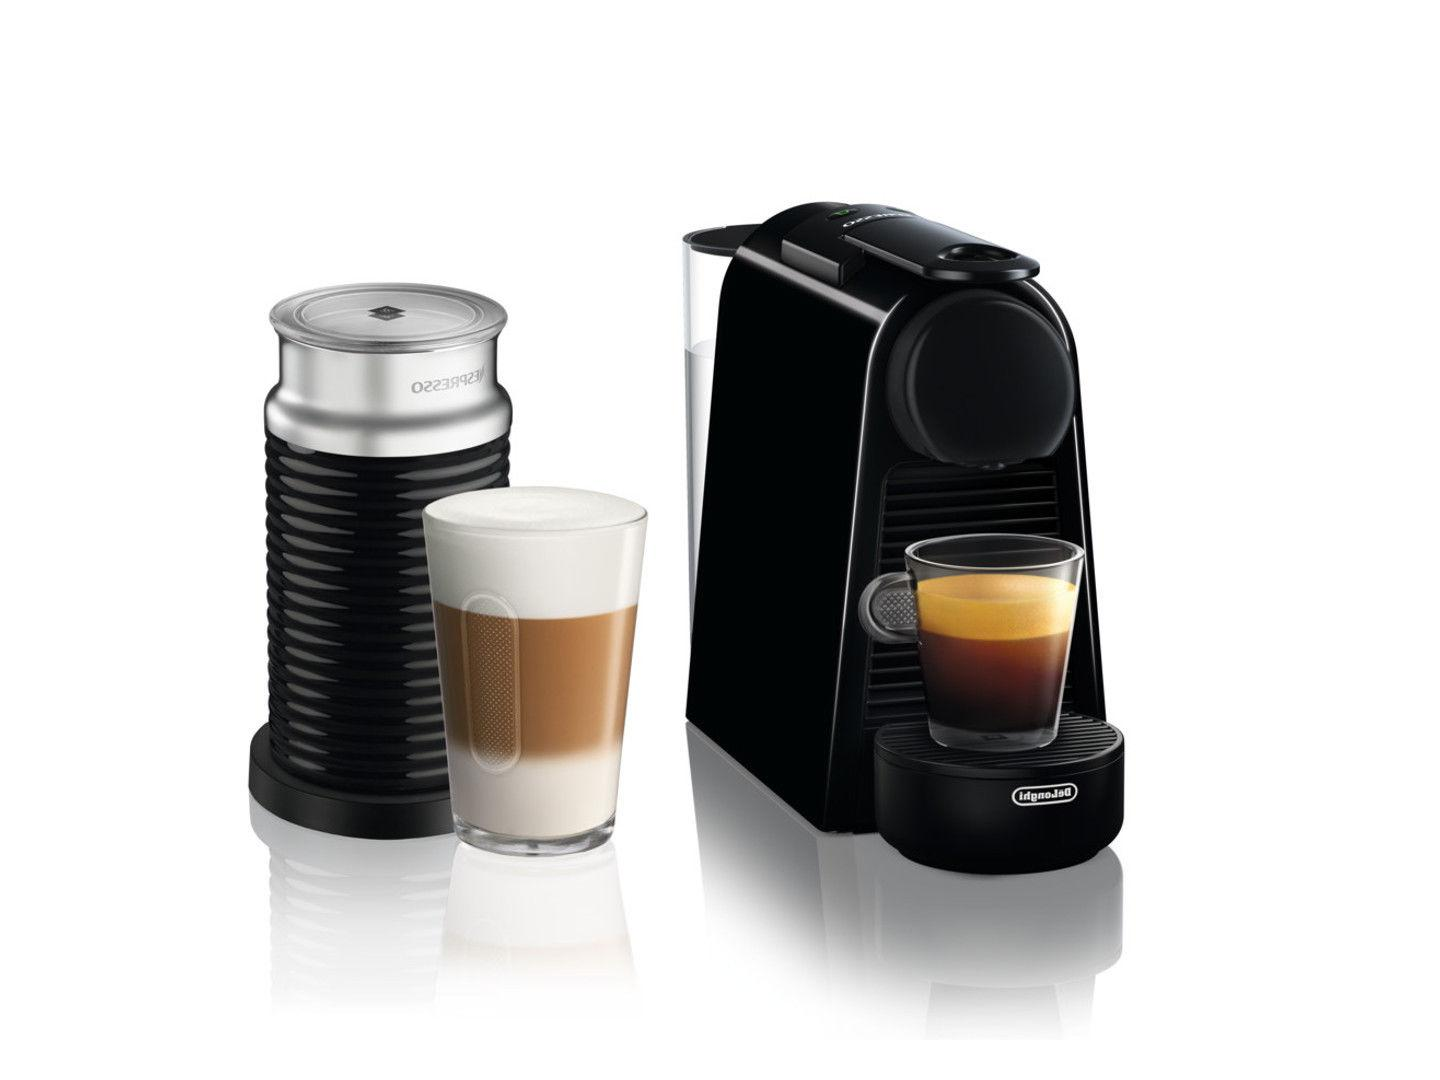 Machine with Aeroccino By delonghi,